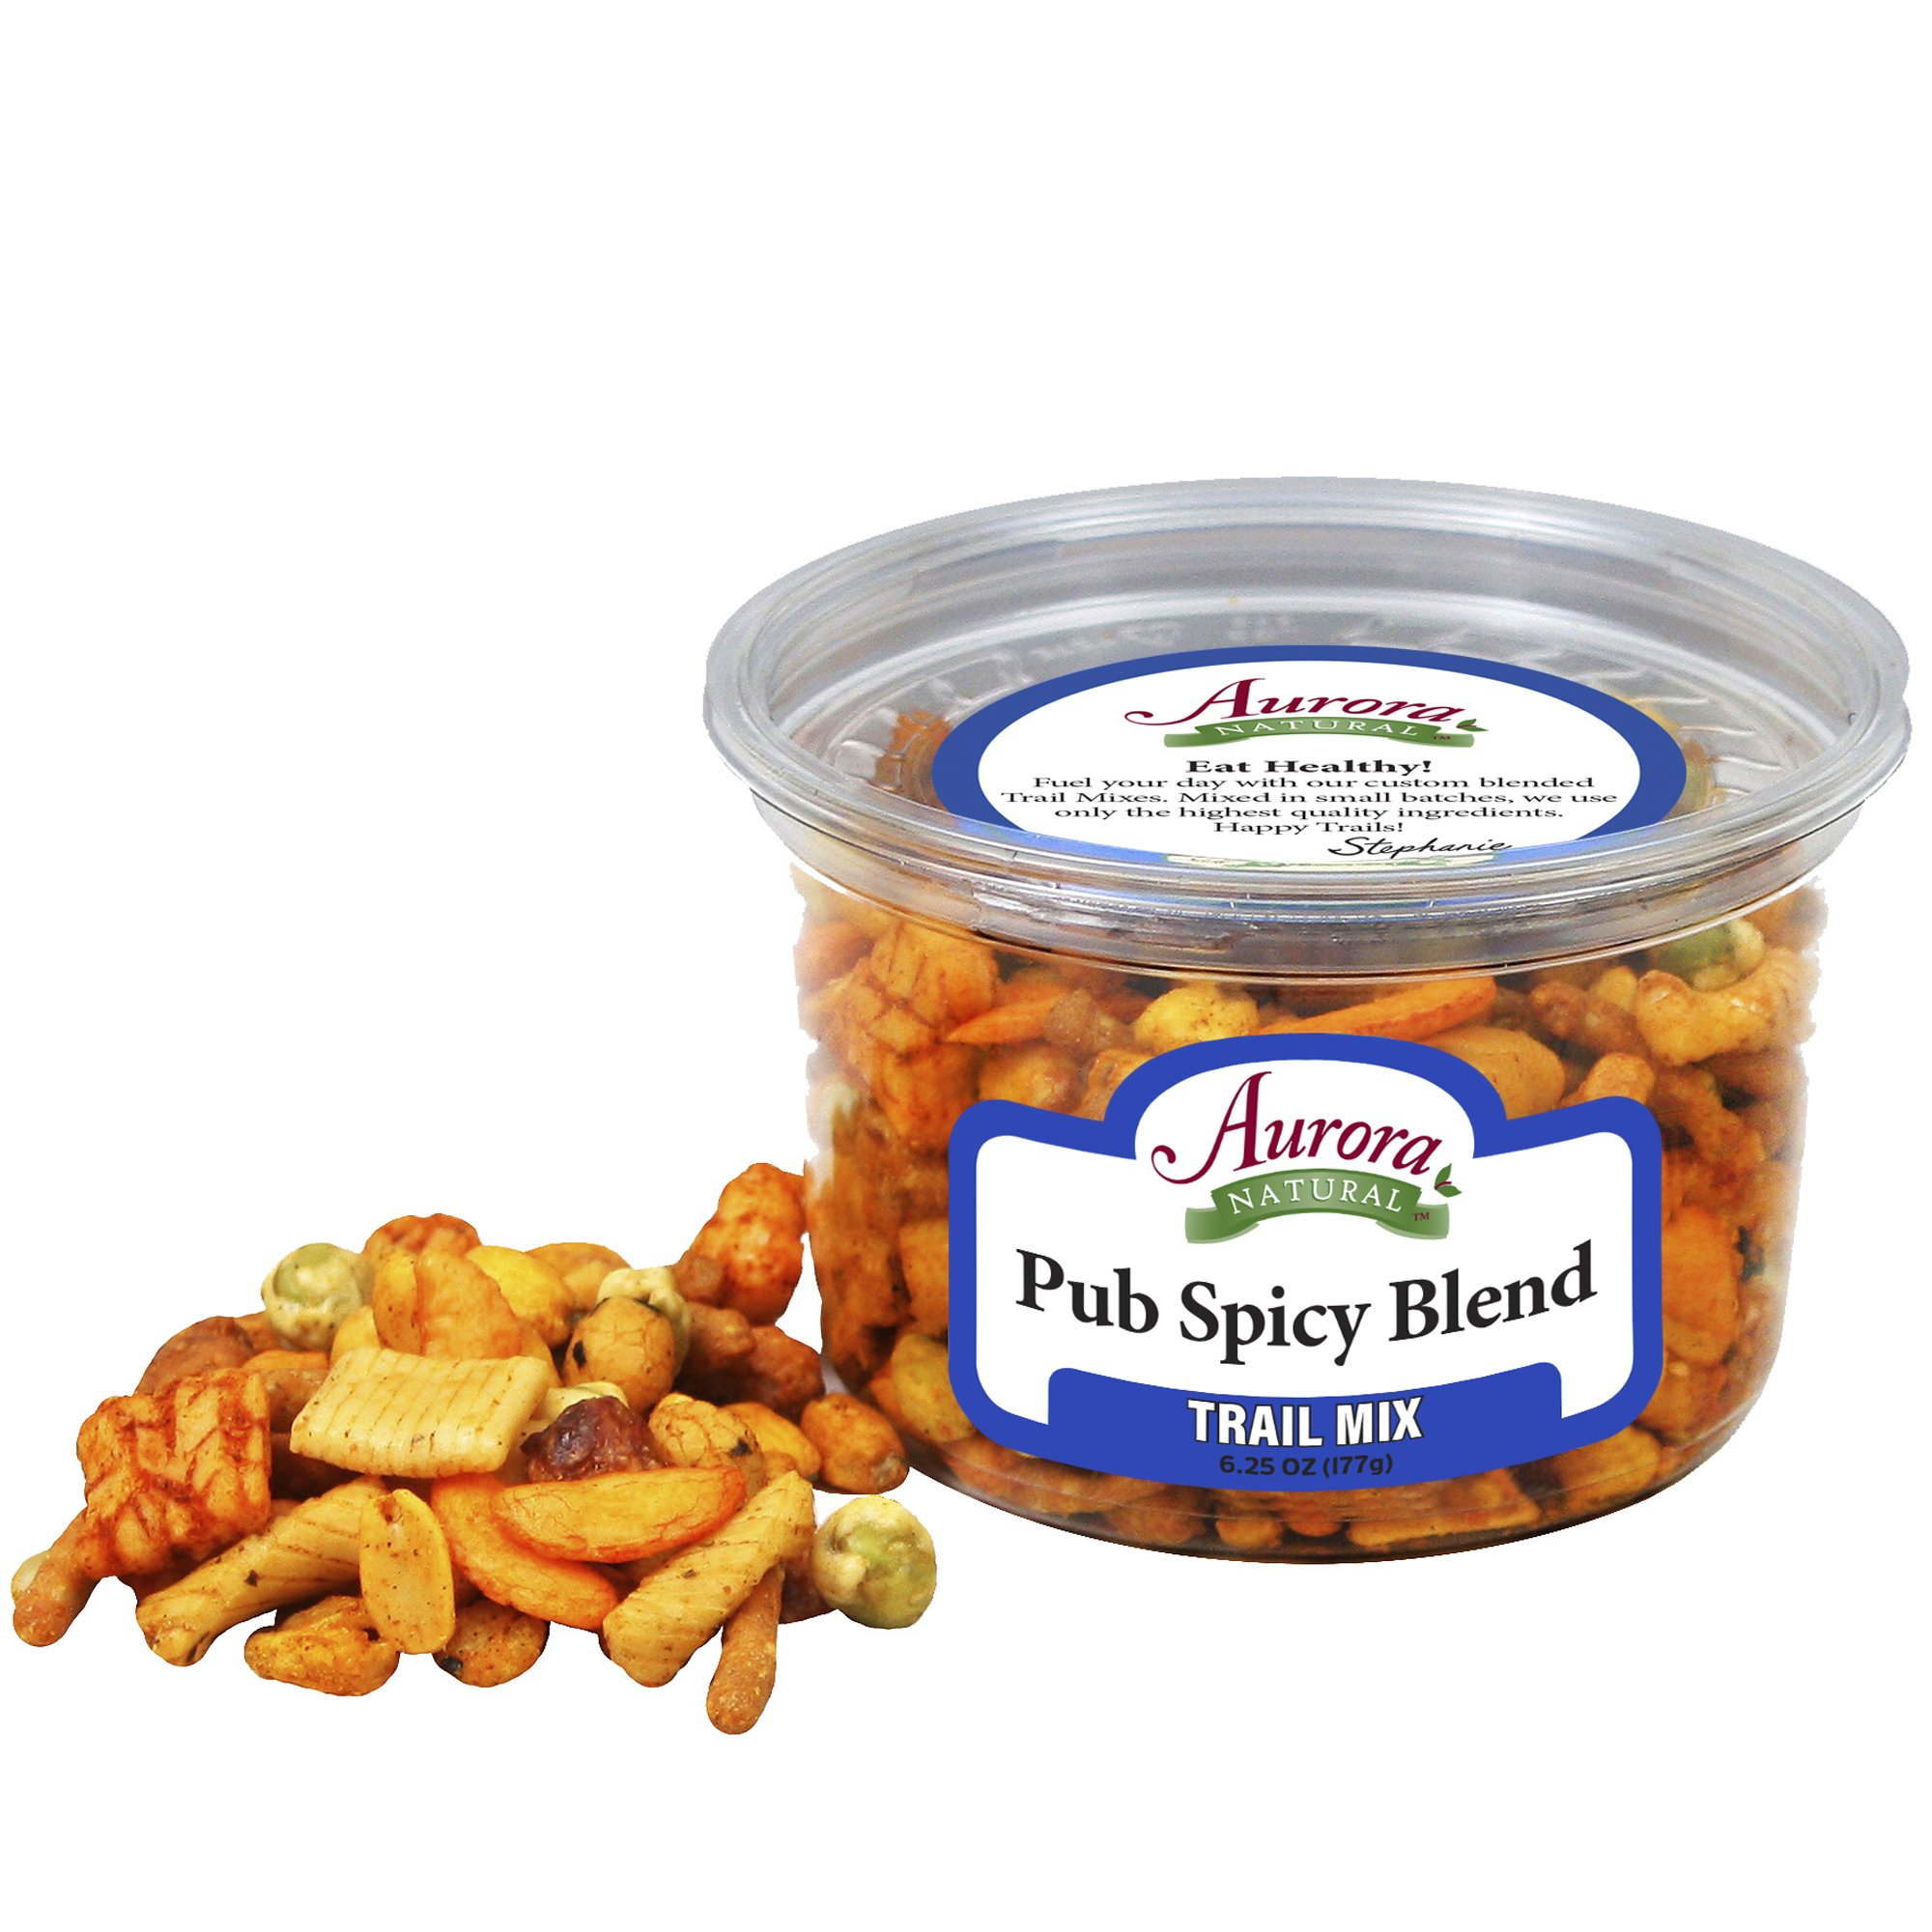 Aurora Natural Products Pub Spicy Blend, 6.25 Ounce (Pack of 12)